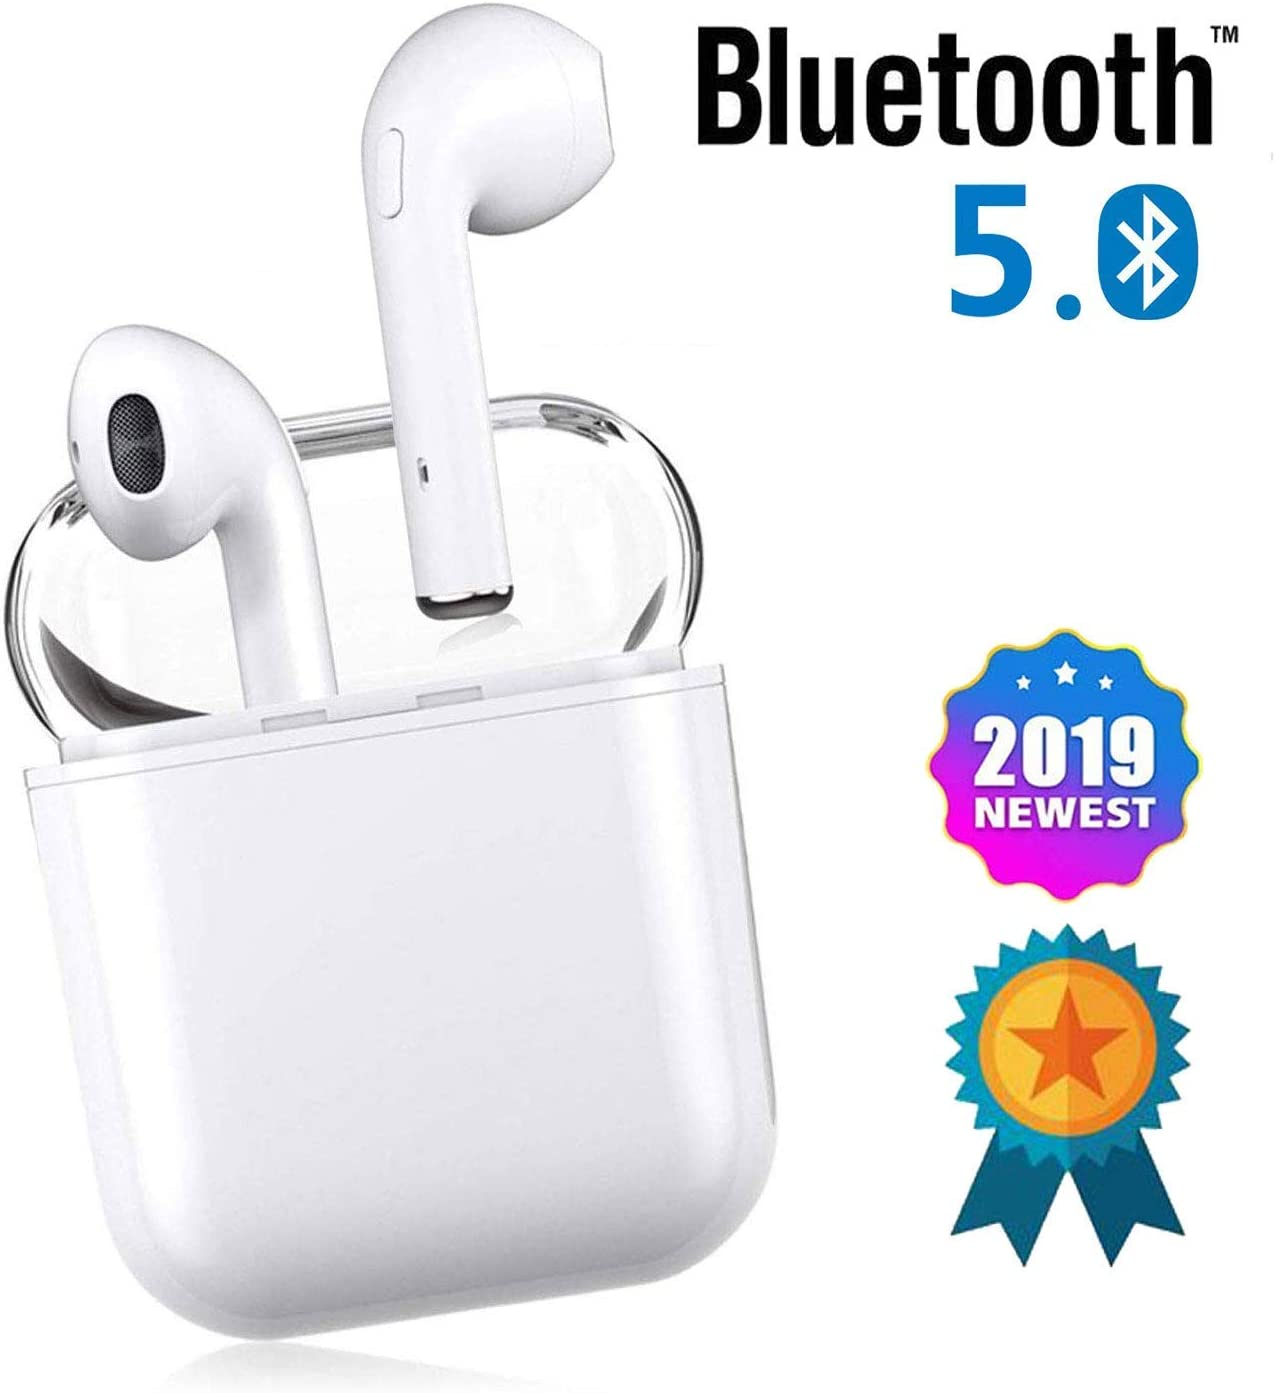 Bluetooth Headset, Wireless Headset Bilateral Call Bluetooth Headset 5.0in-Ear Earphones Stereo in-Ear Microphone Built-in Handsfree Headphones for Apple Airpods Android iPhone